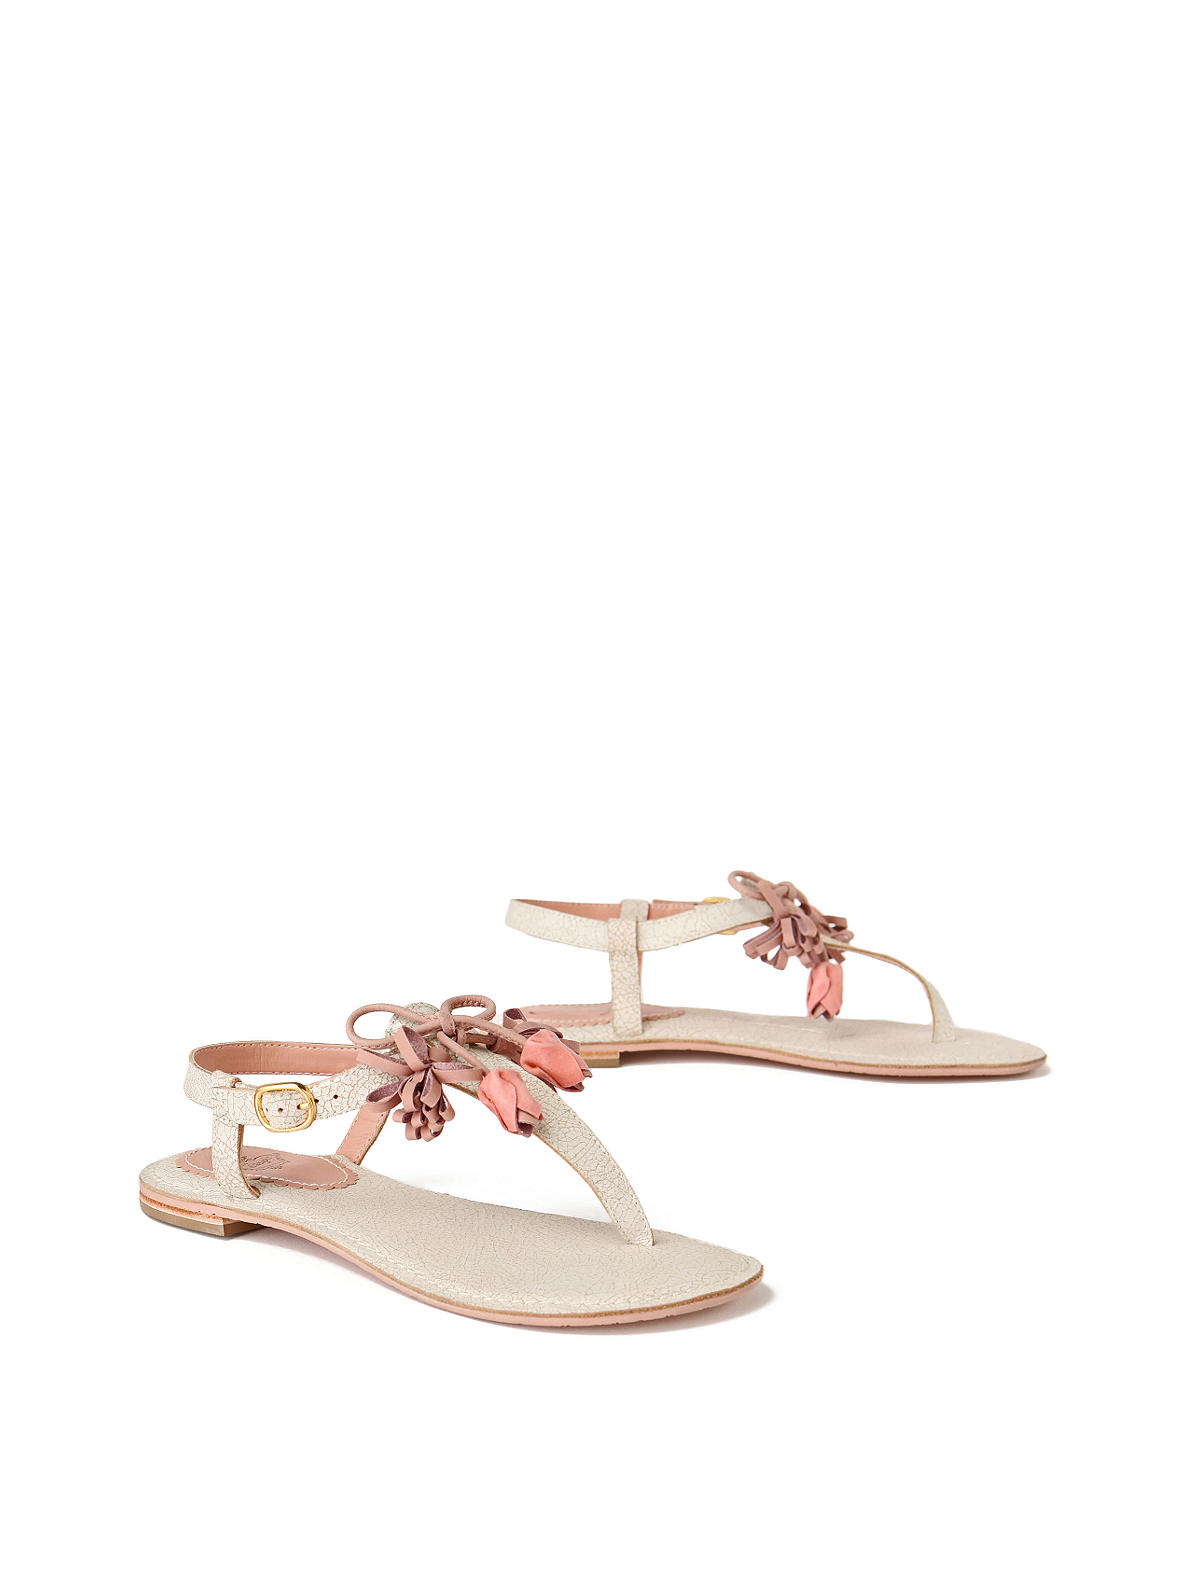 Calappa Thongs - Anthropologie.com :  chic design designer anthropologie